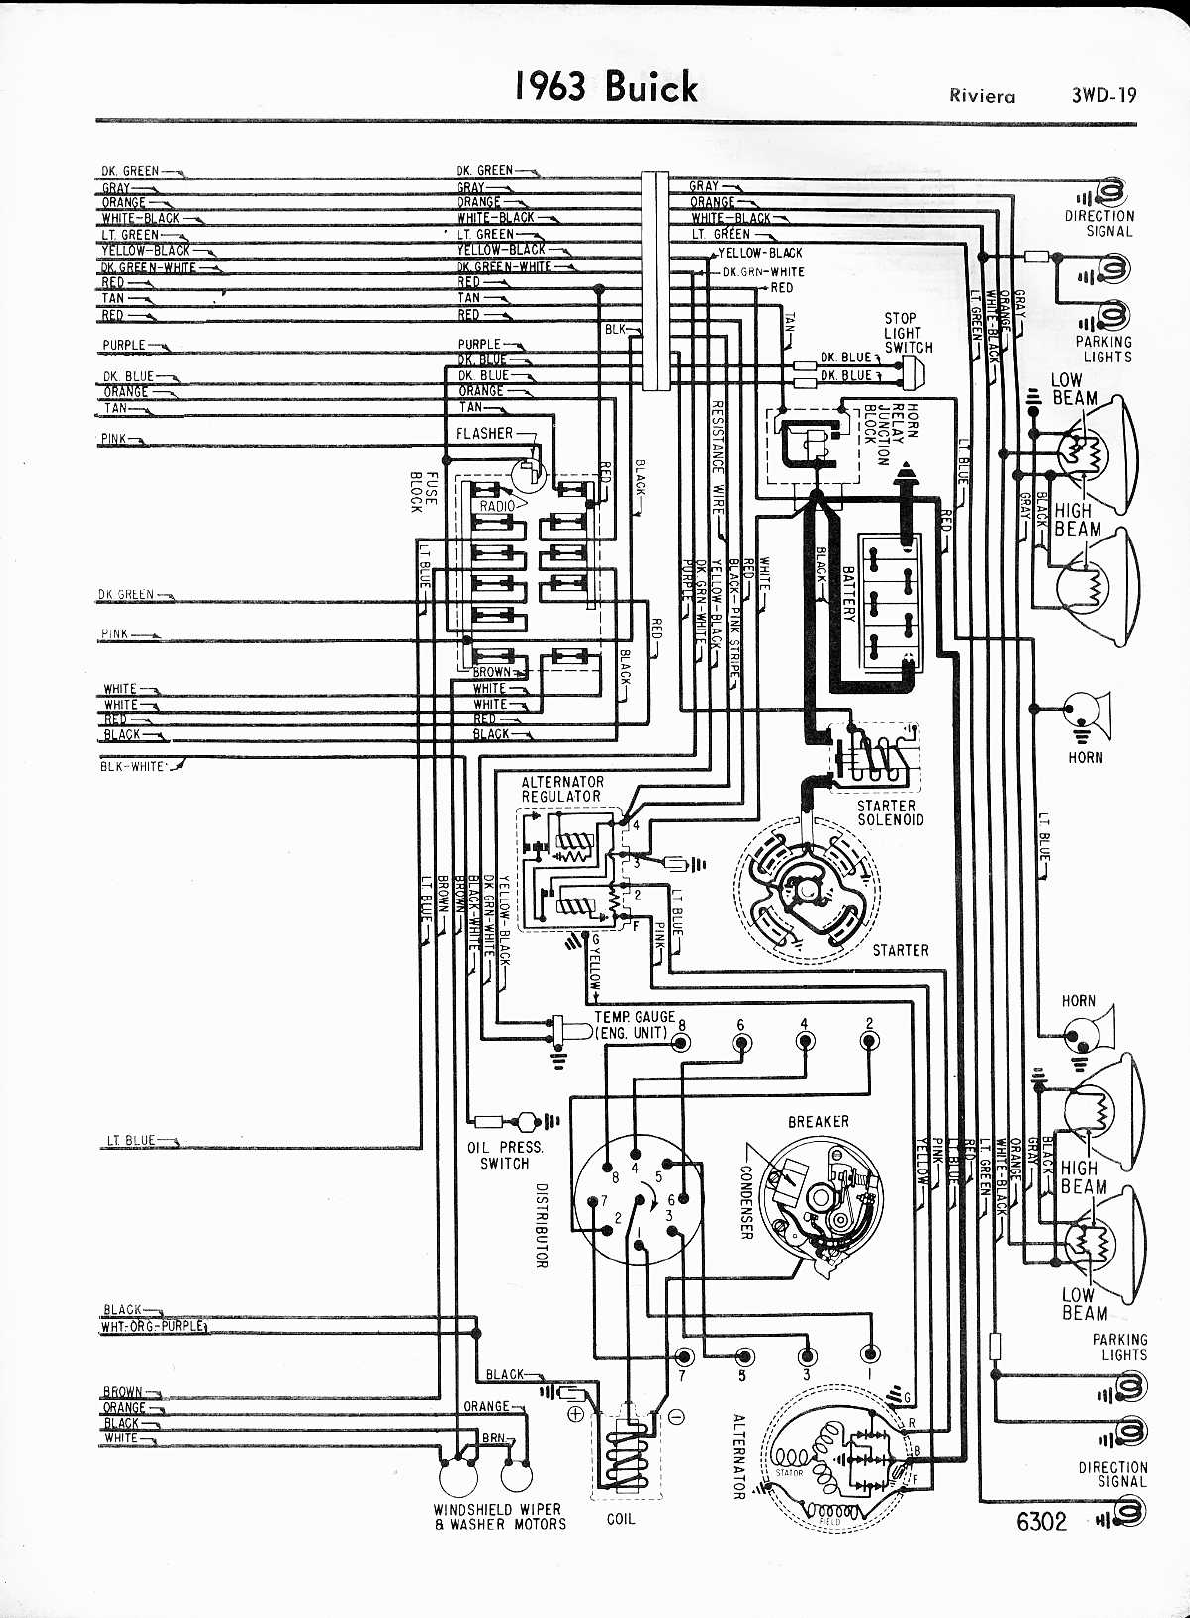 hight resolution of buick riviera 1963 1965 misc documents wiring diagrams pdf 1995 buick lesabre wiring diagram 65 buick wiring diagram